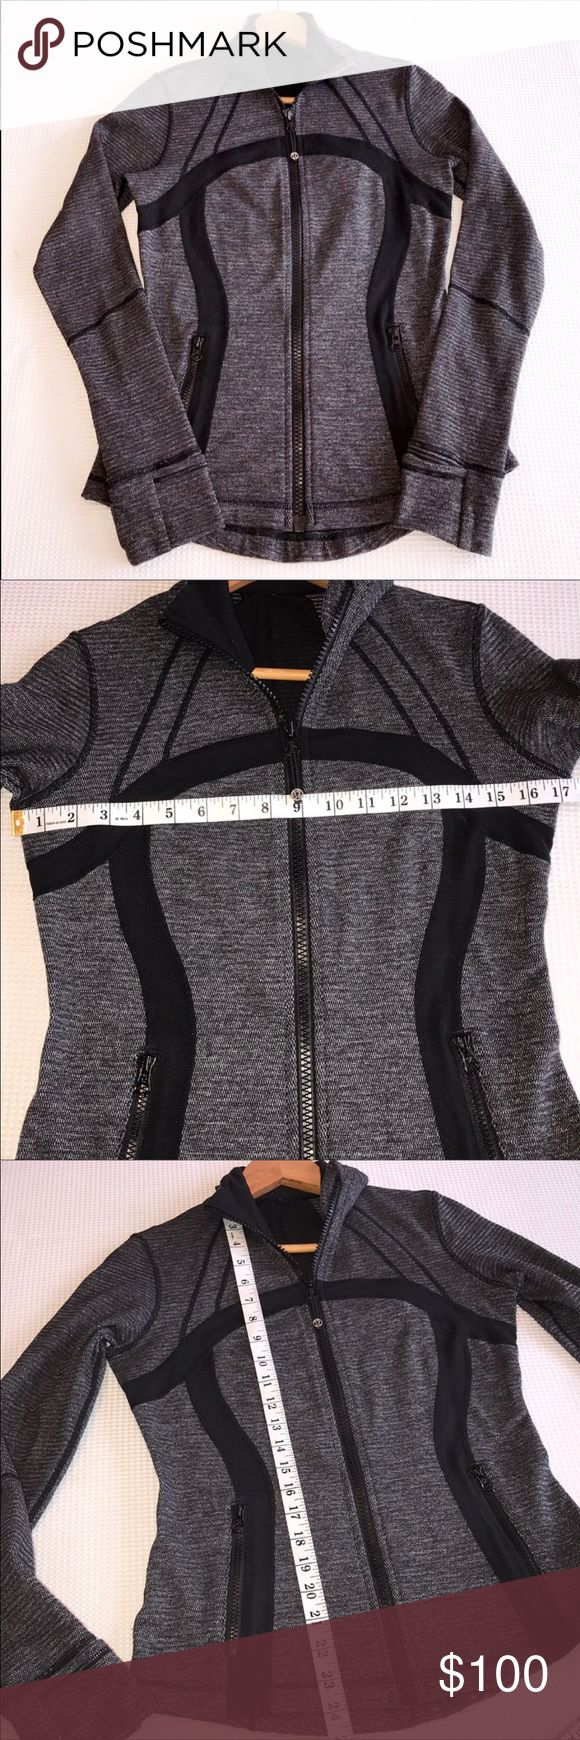 LuluLemon Define Mini Check Black Heathered Coal LuluLemon Define Soft Mini Check Black Heathered Coal 6 • Style # W4397S • Gently used  • Good Condition  • Size 6 • Super Stretchy  • Flattering Fit • Thumb holes • Sweat-Wicking • Four-Way Stretch • Cottony-Soft Handfeel • Quick Recovery • Naturally Breathable lululemon athletica Jackets & Coats